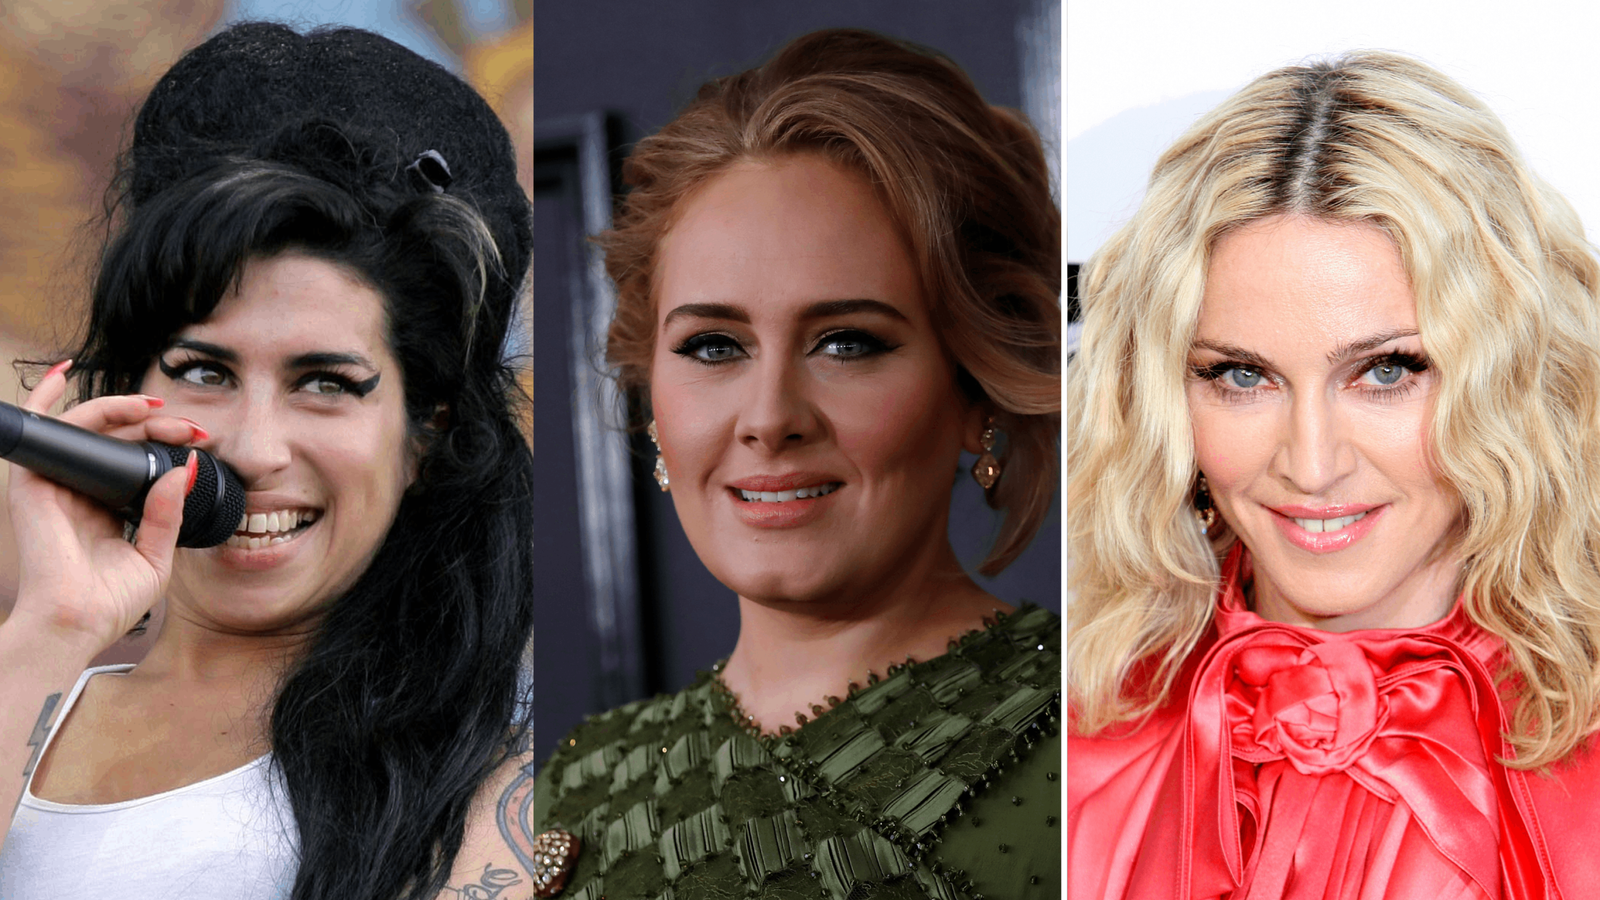 Adele's 21 tops charts as best-selling women singers in UK revealed ahead of Amy Winehouse and Madonna